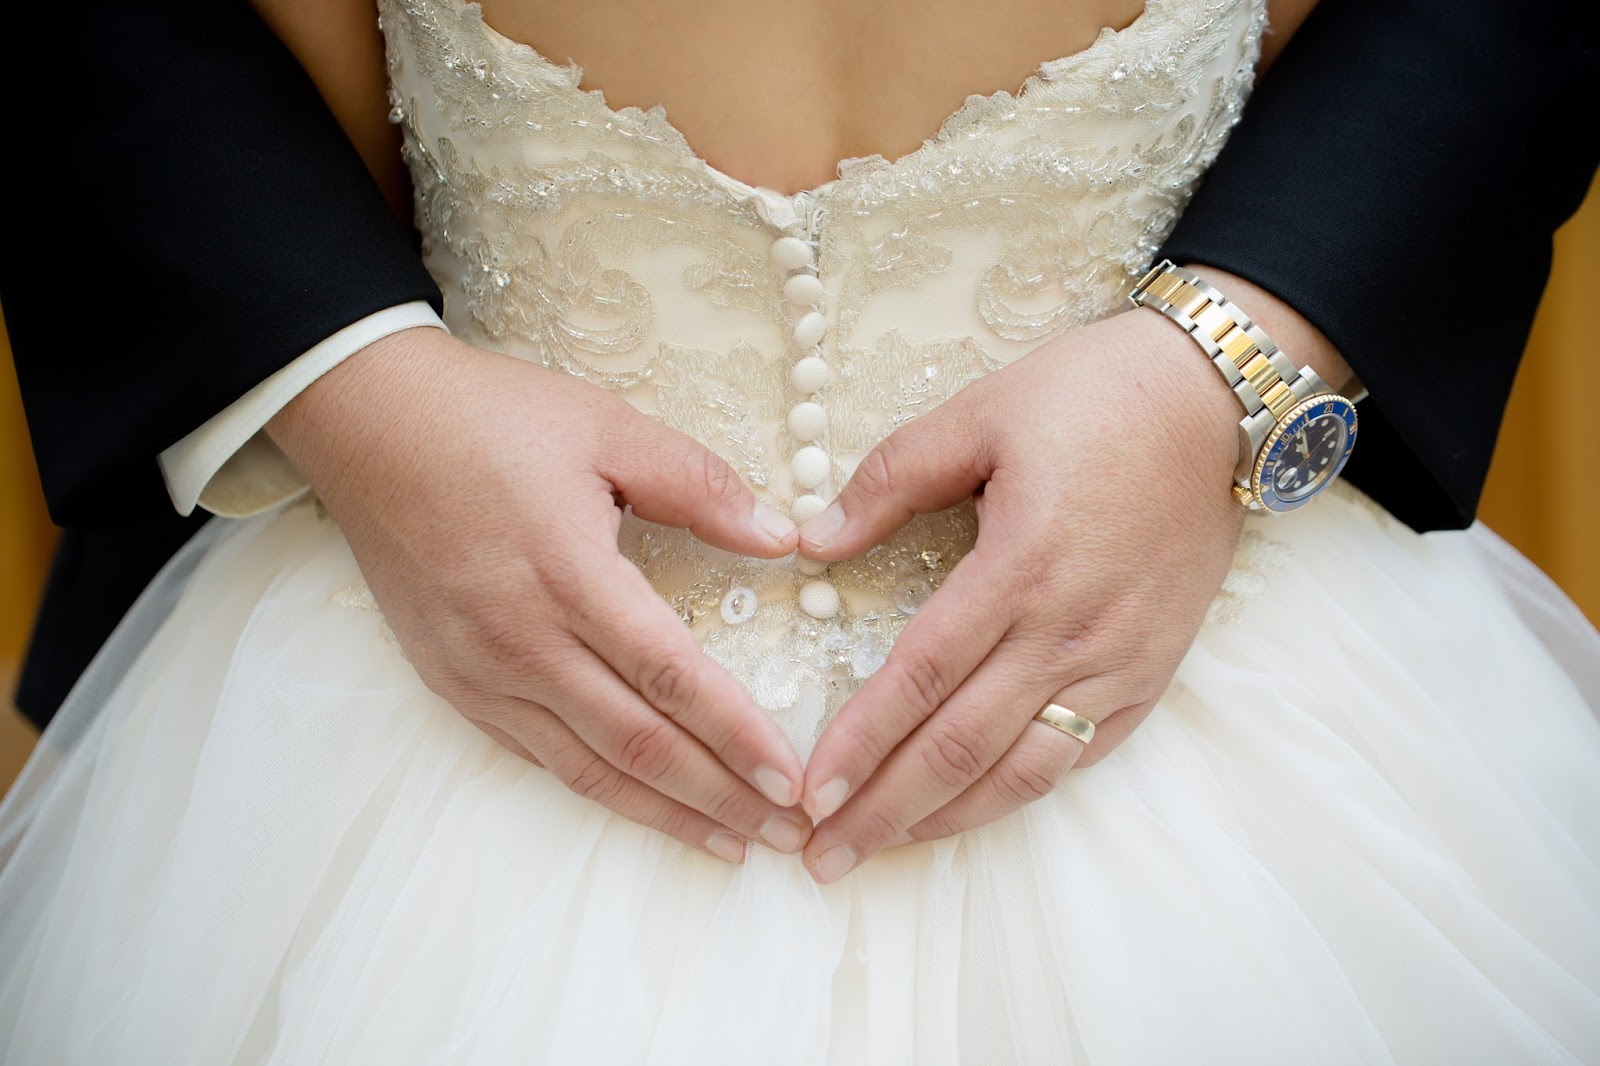 Groom hands in heart shape on bride's dress